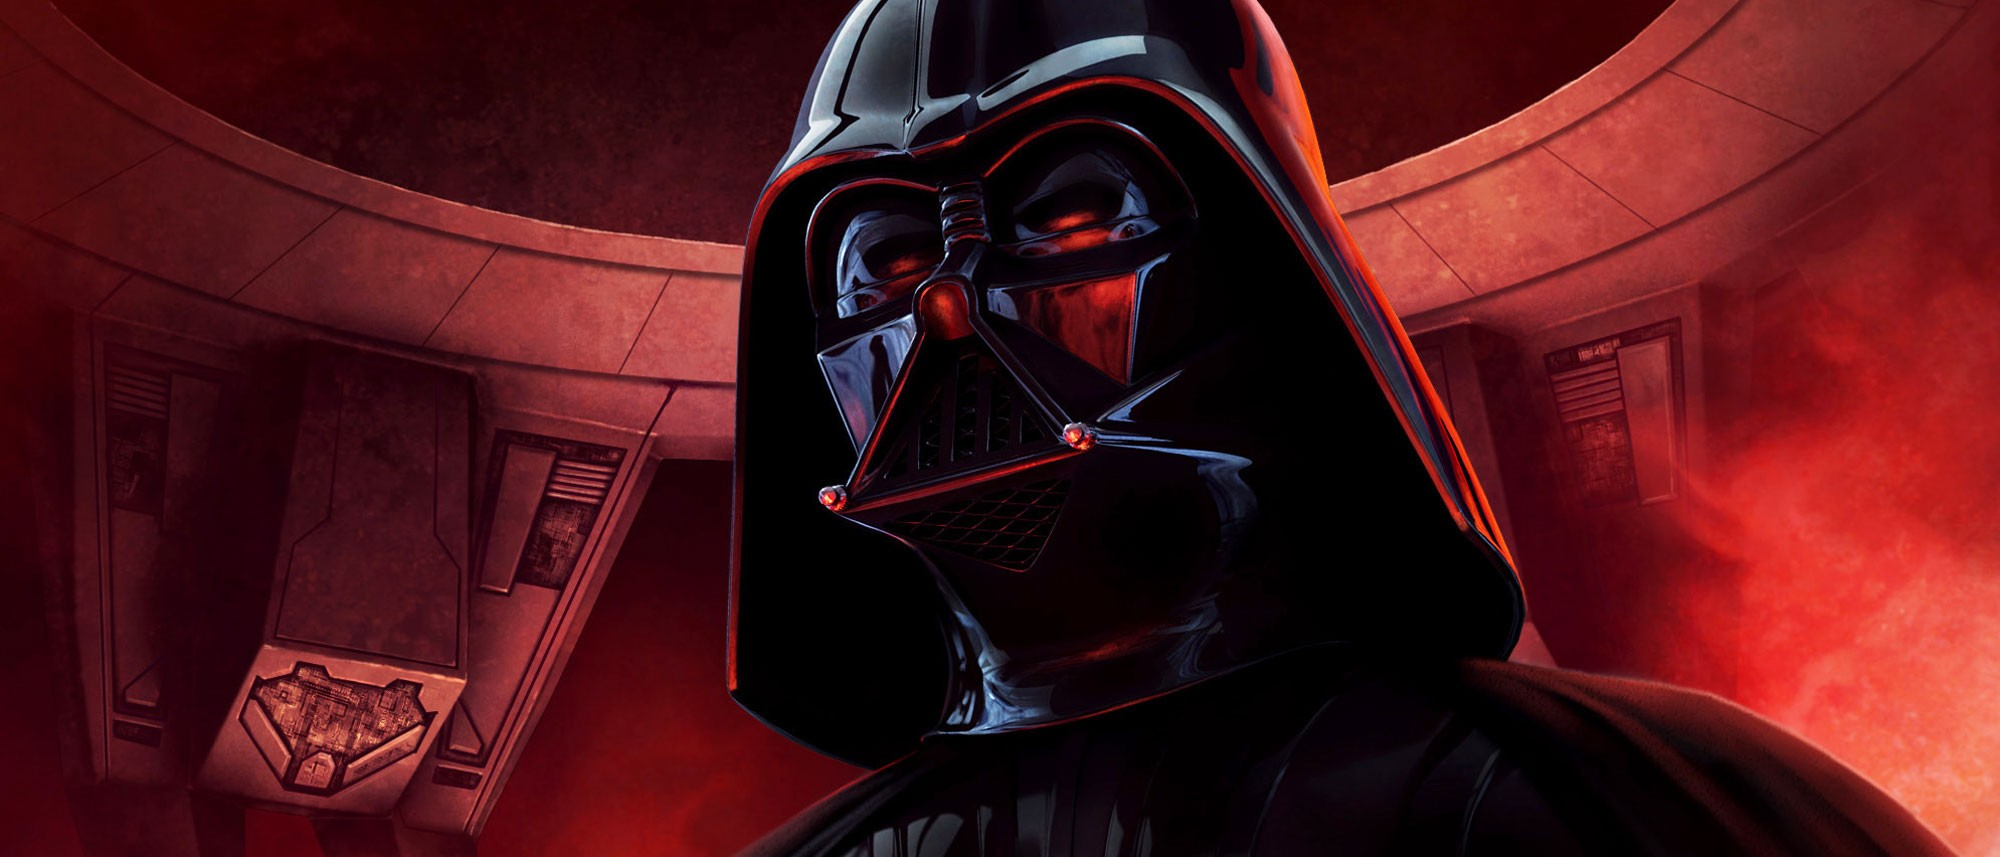 Darth Vader Rumoured To Return In Future Star Wars Movies Small Screen